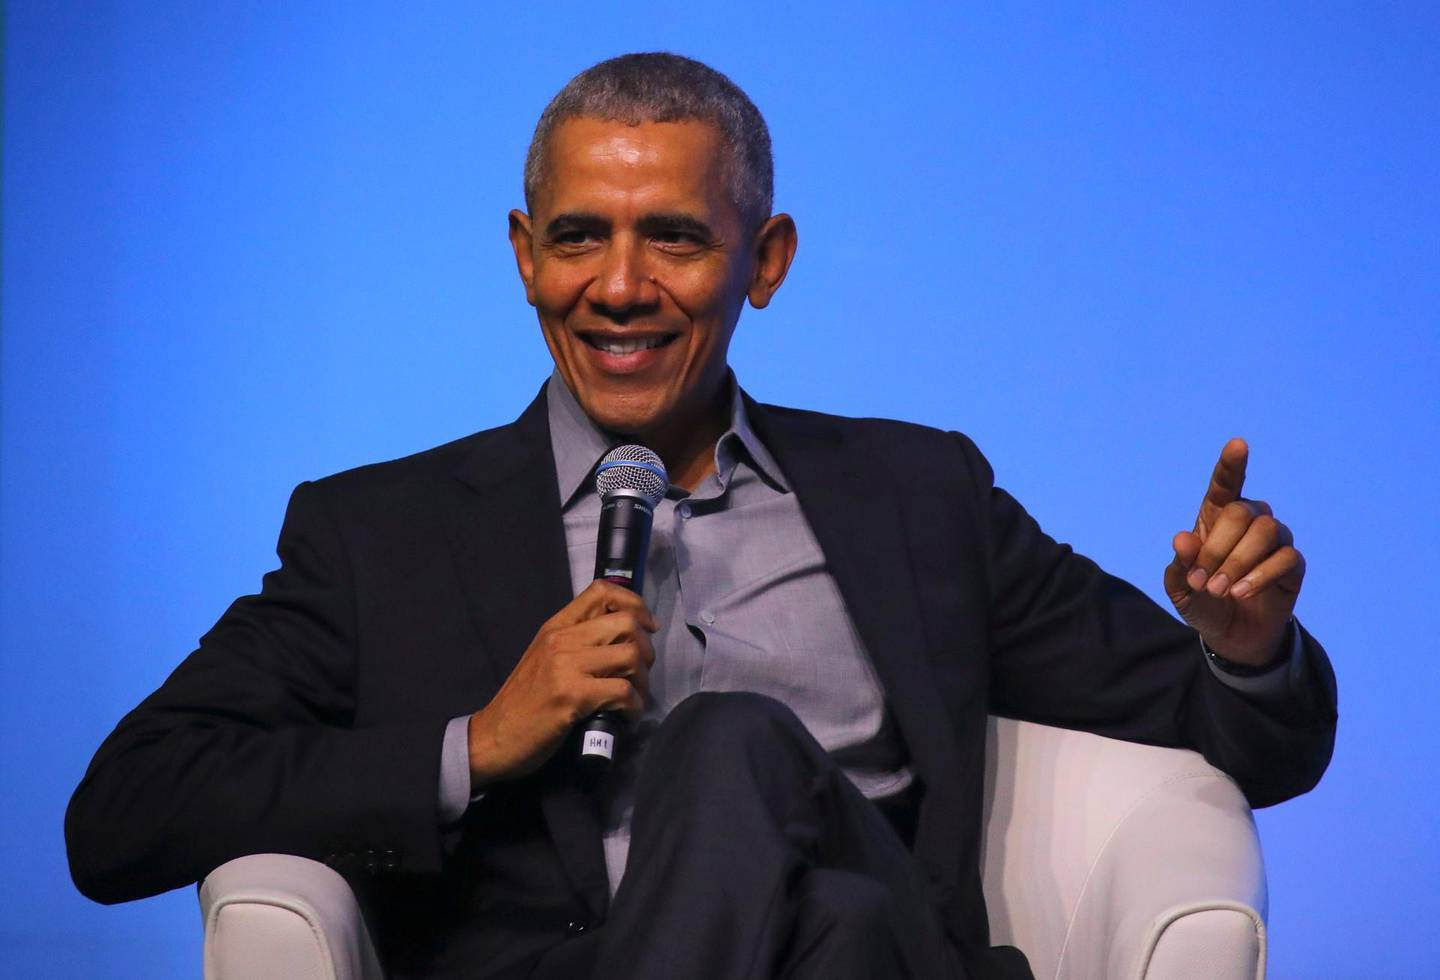 epa08067536 Former US president Barack Obama talks on stage at an Obama Foundation event in Kuala Lumpur, Malaysia, 13 December 2019. Obama and his wife Michelle are in Kuala Lumpur for the inaugural Leaders: Asia-Pacific conference, focused on promoting women's education in the region.  EPA/FAZRY ISMAIL